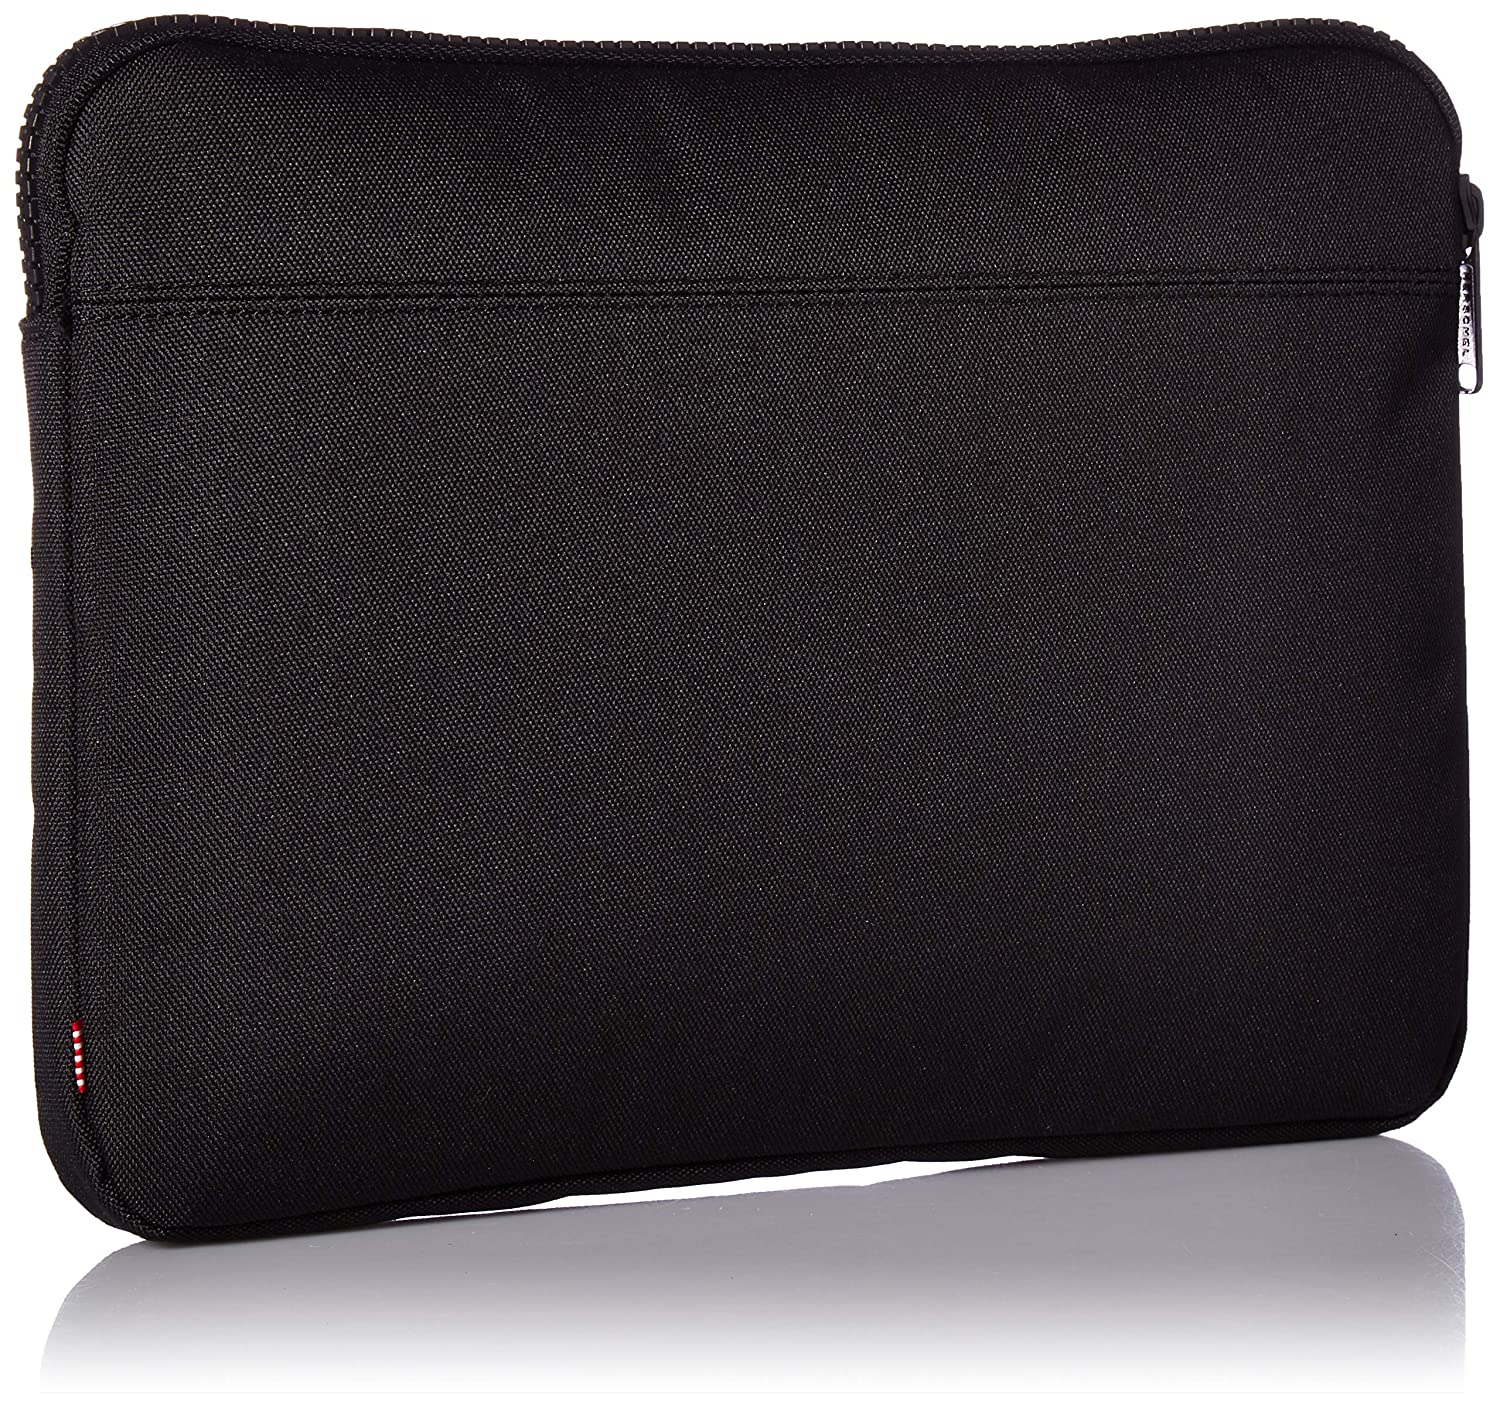 a5cc44d75b0 Amazon.com  Herschel Supply Co. Unisex-Adult s Anchor Sleeve for New 13  inch MacBook, Black, One Size  Clothing